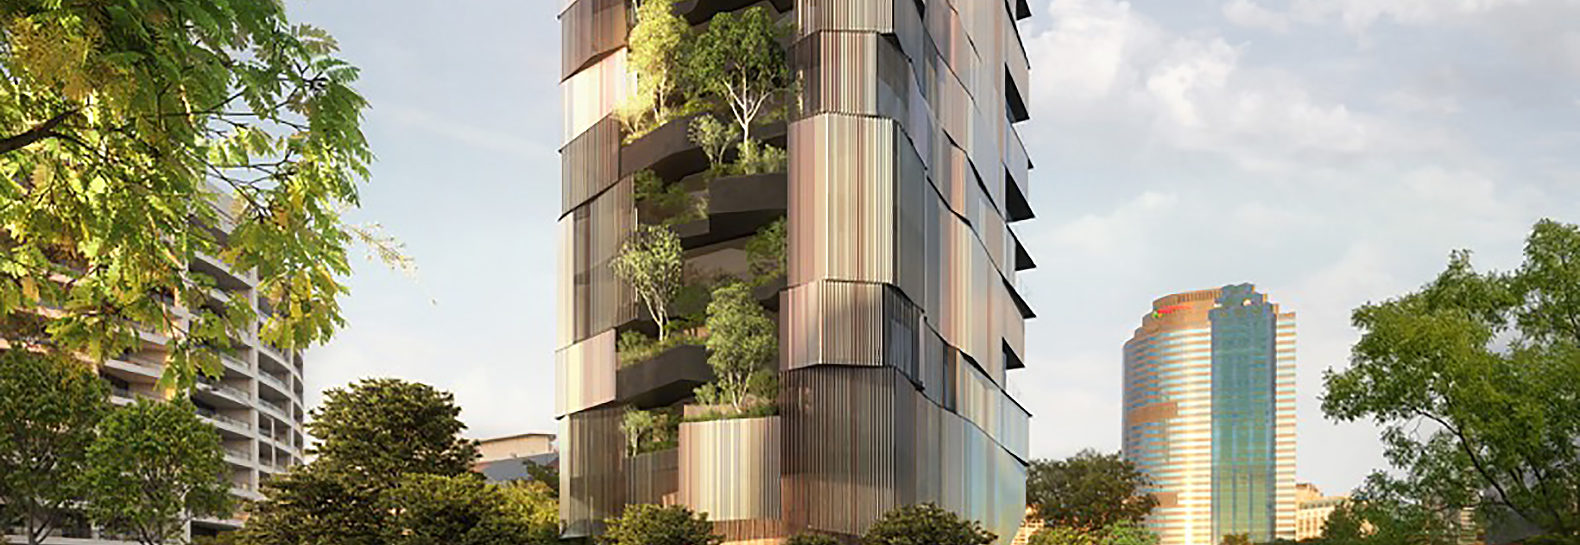 Apartment Building Exterior 14-story apartment building in brisbane has a vertical forest